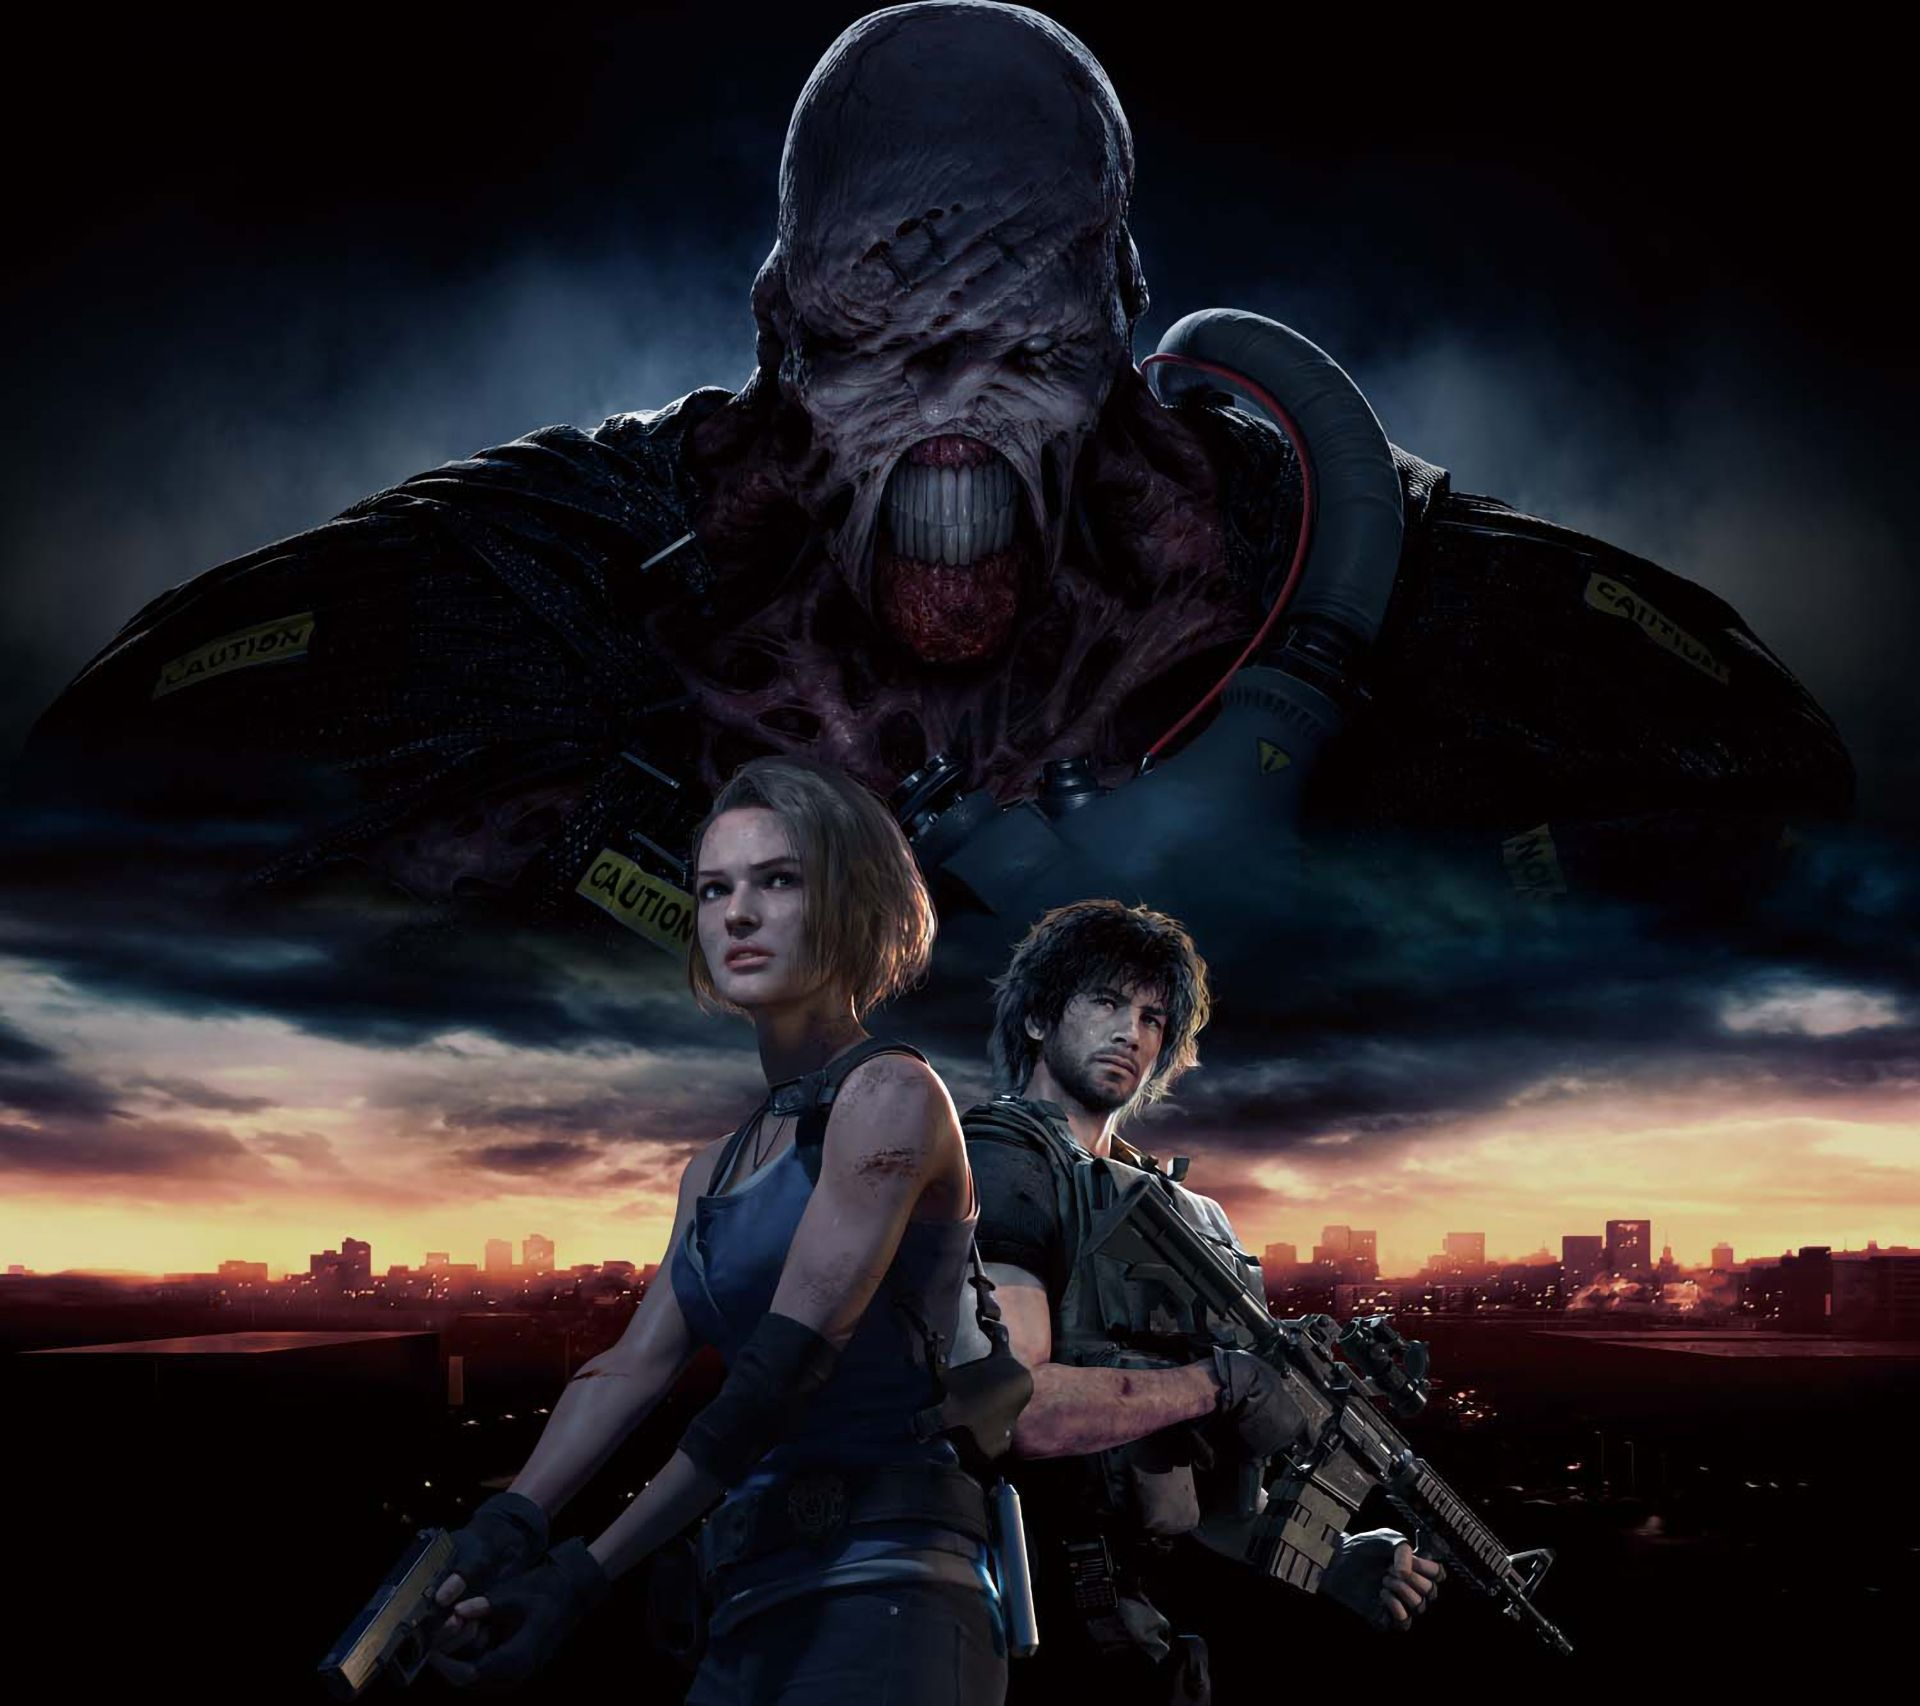 Resident Evil 3 Remake Wallpapers Top Free Resident Evil 3